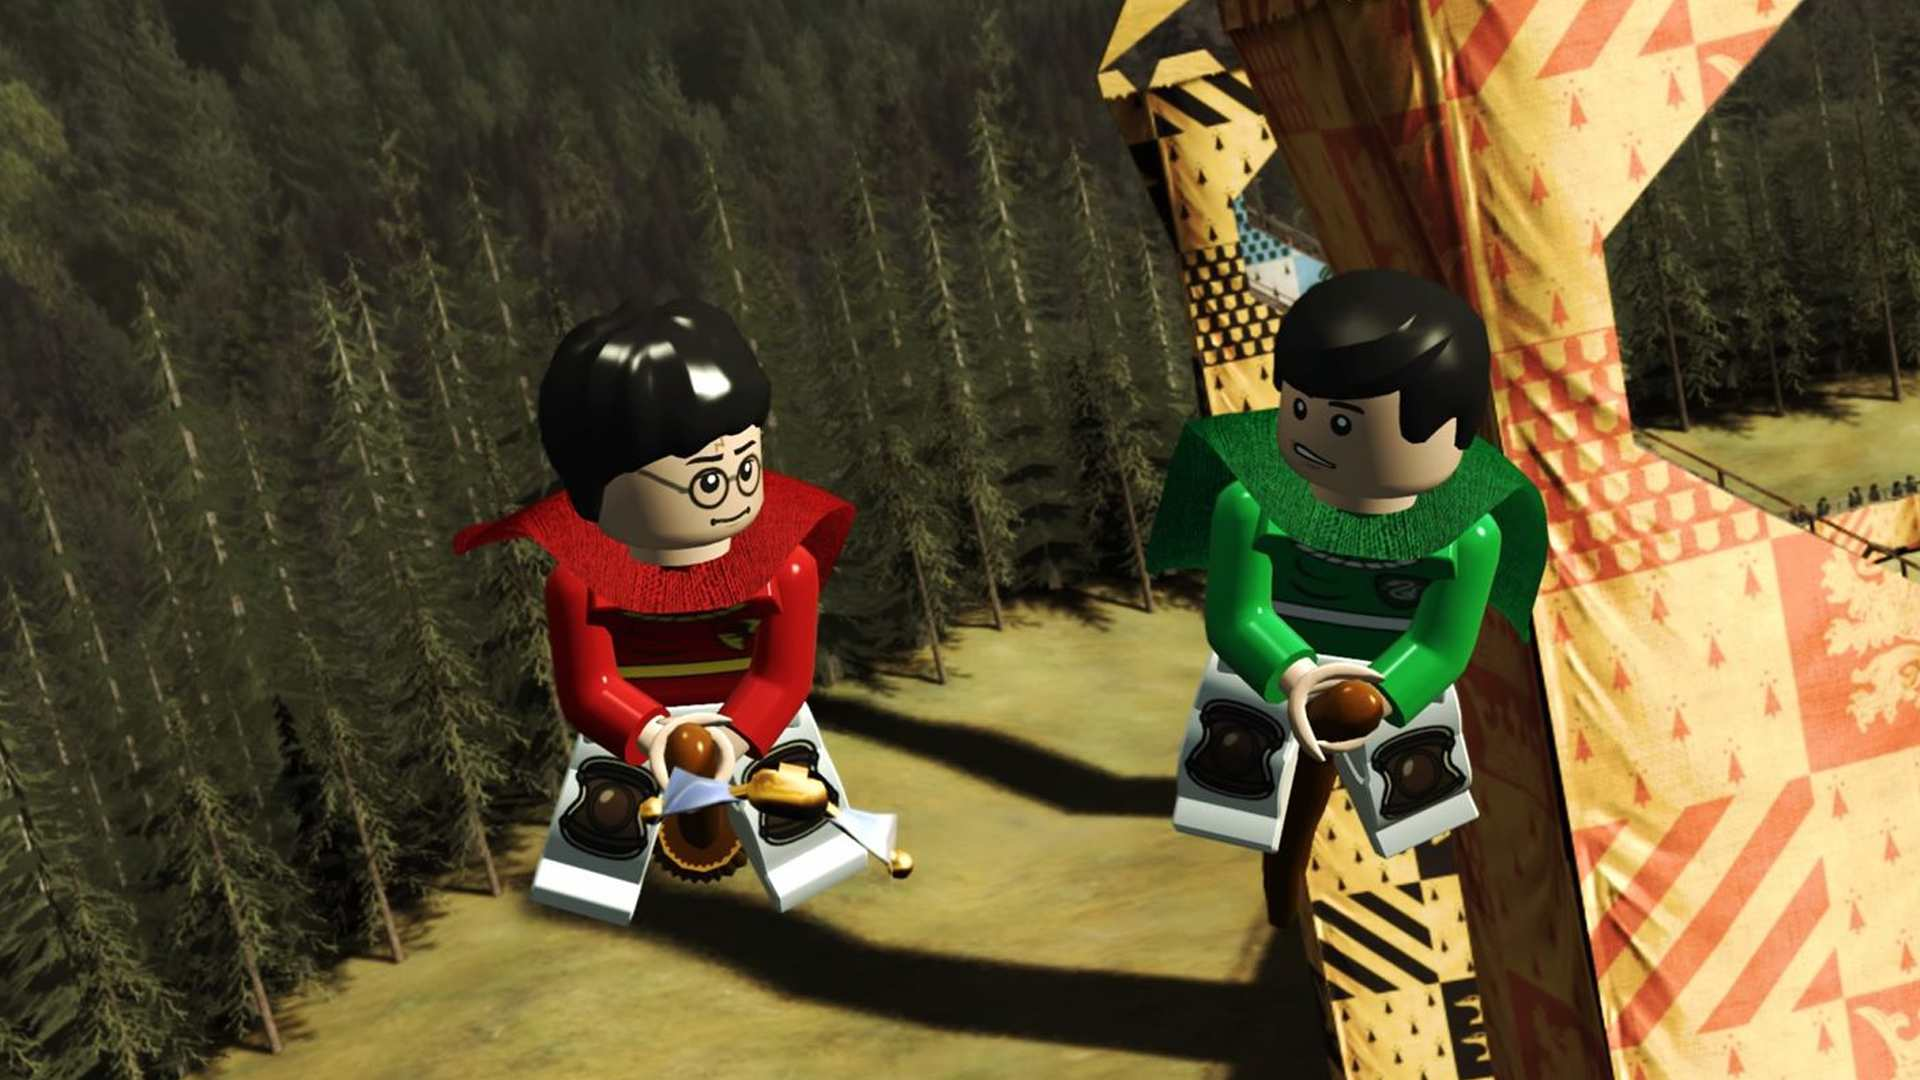 Lego Harry Potter Collection offline video game for kids.